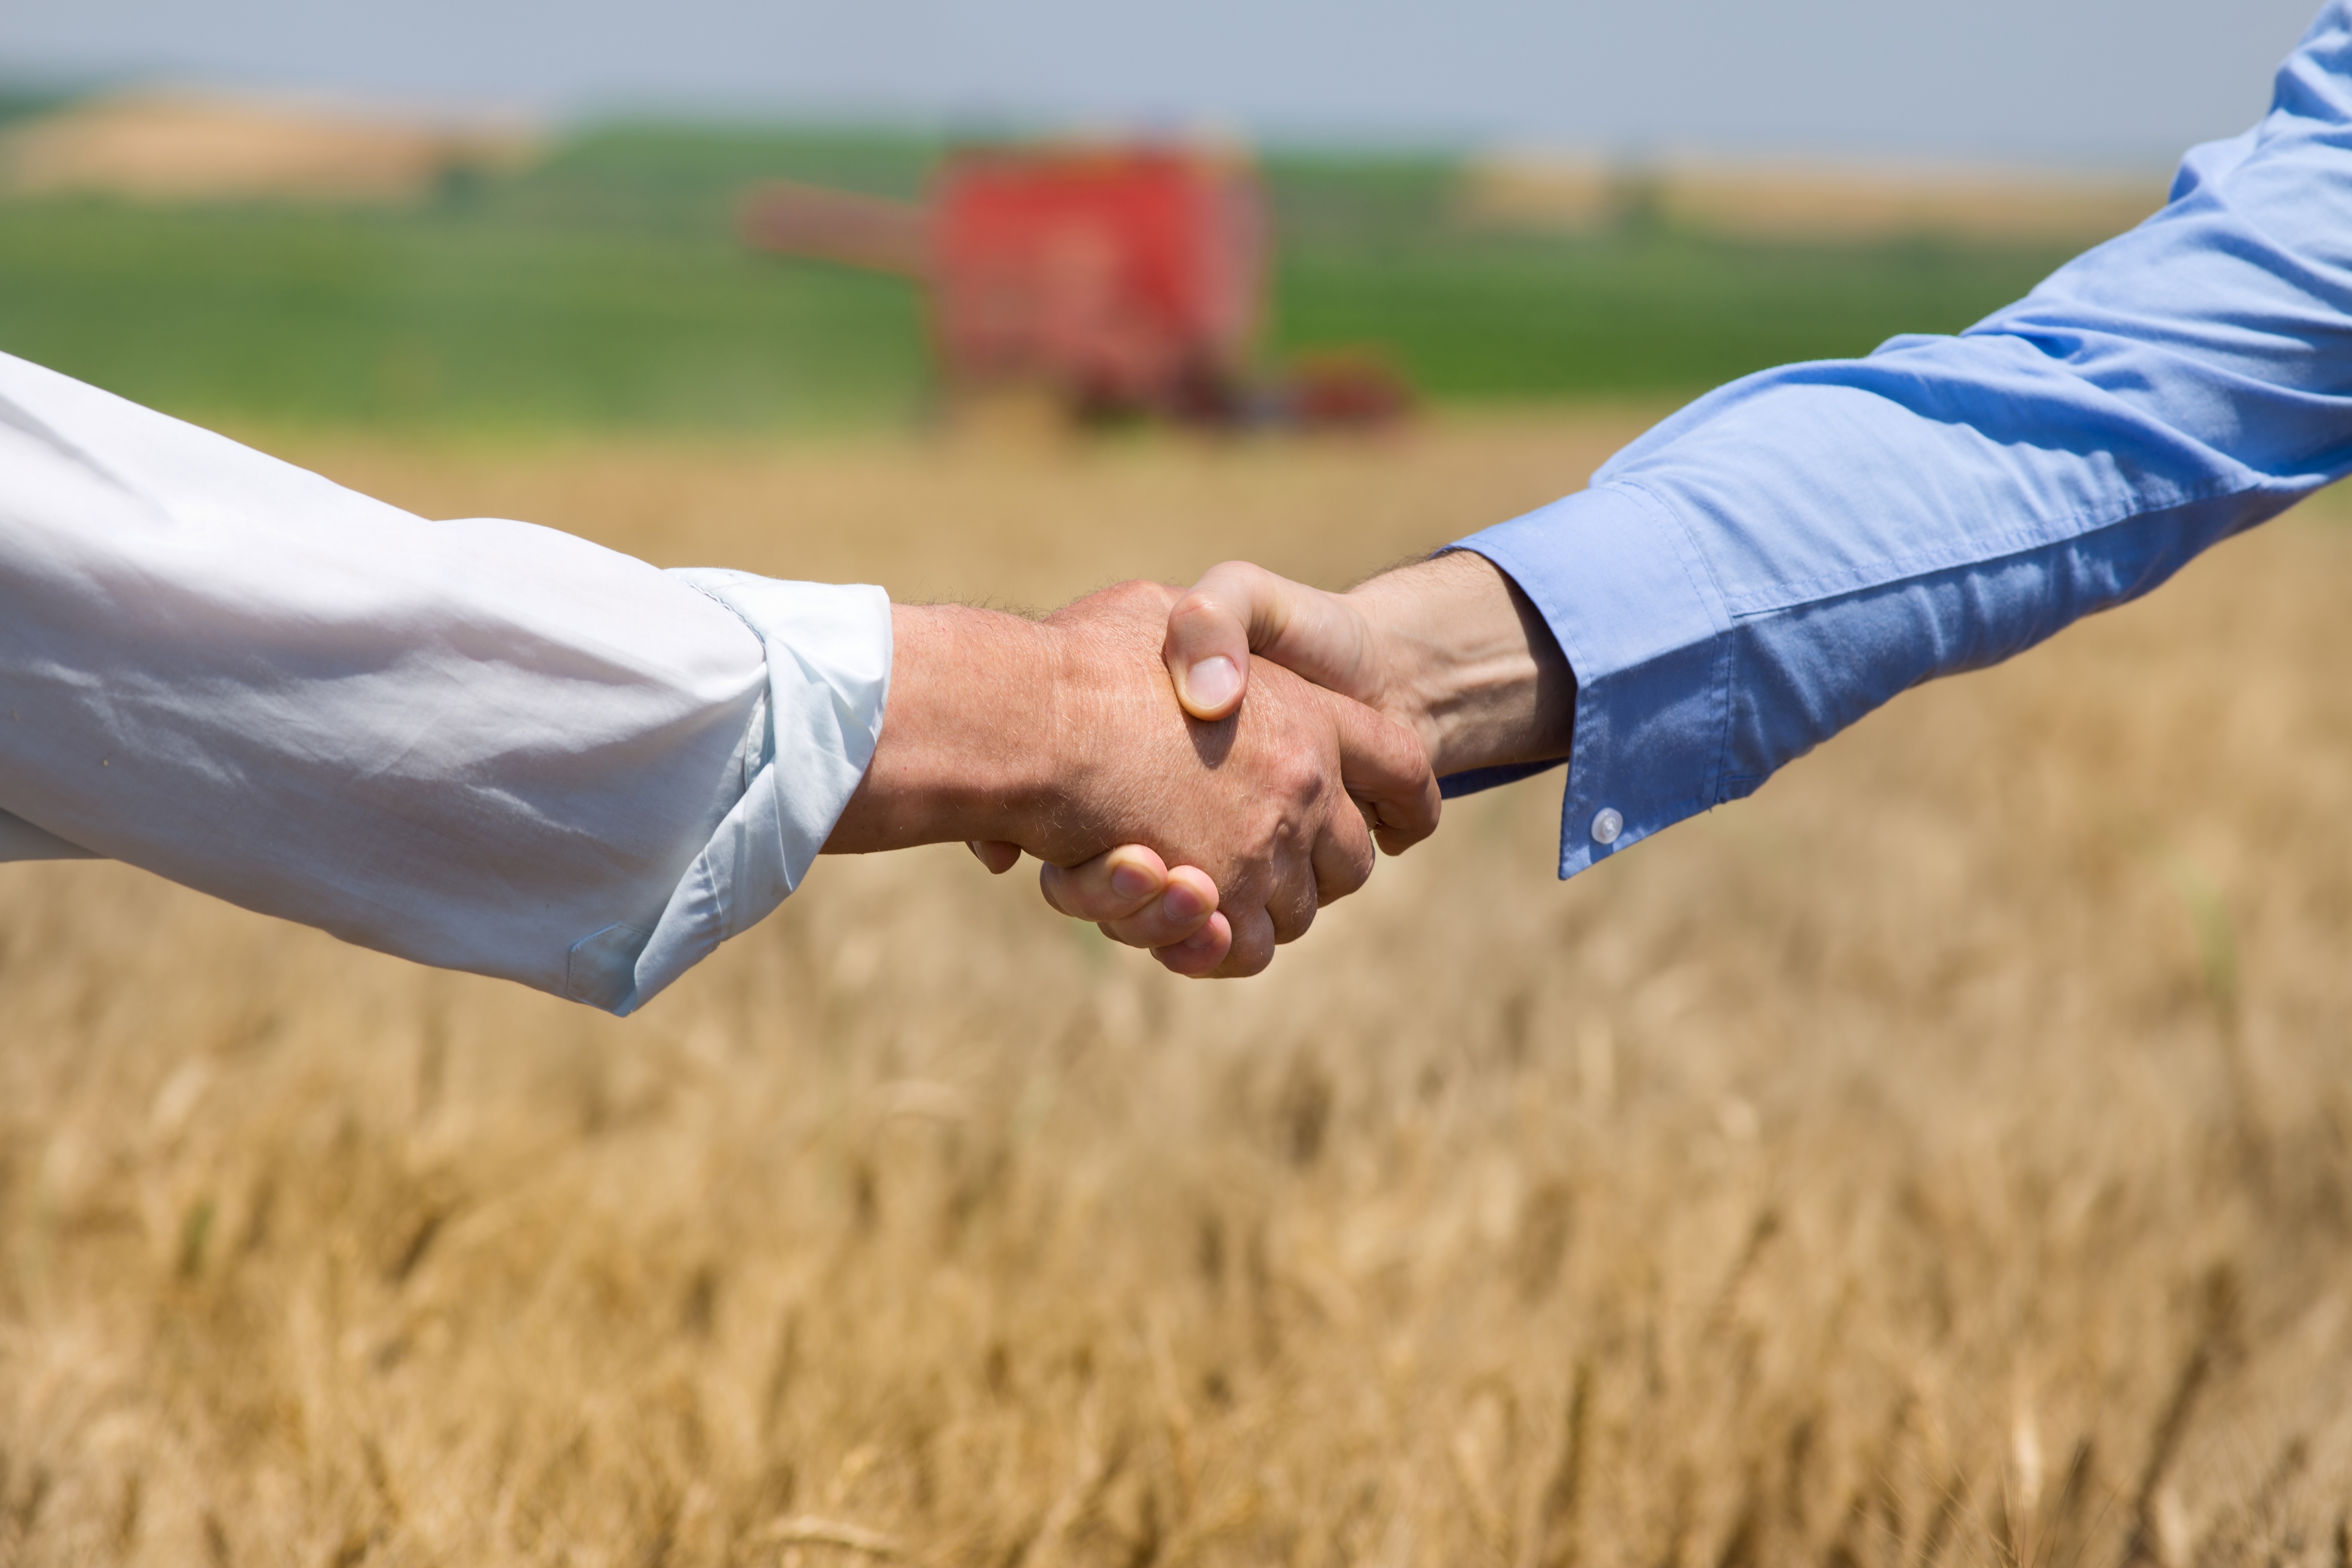 How the Land Buying Process Works from Offer to Close   Rethink:Rural